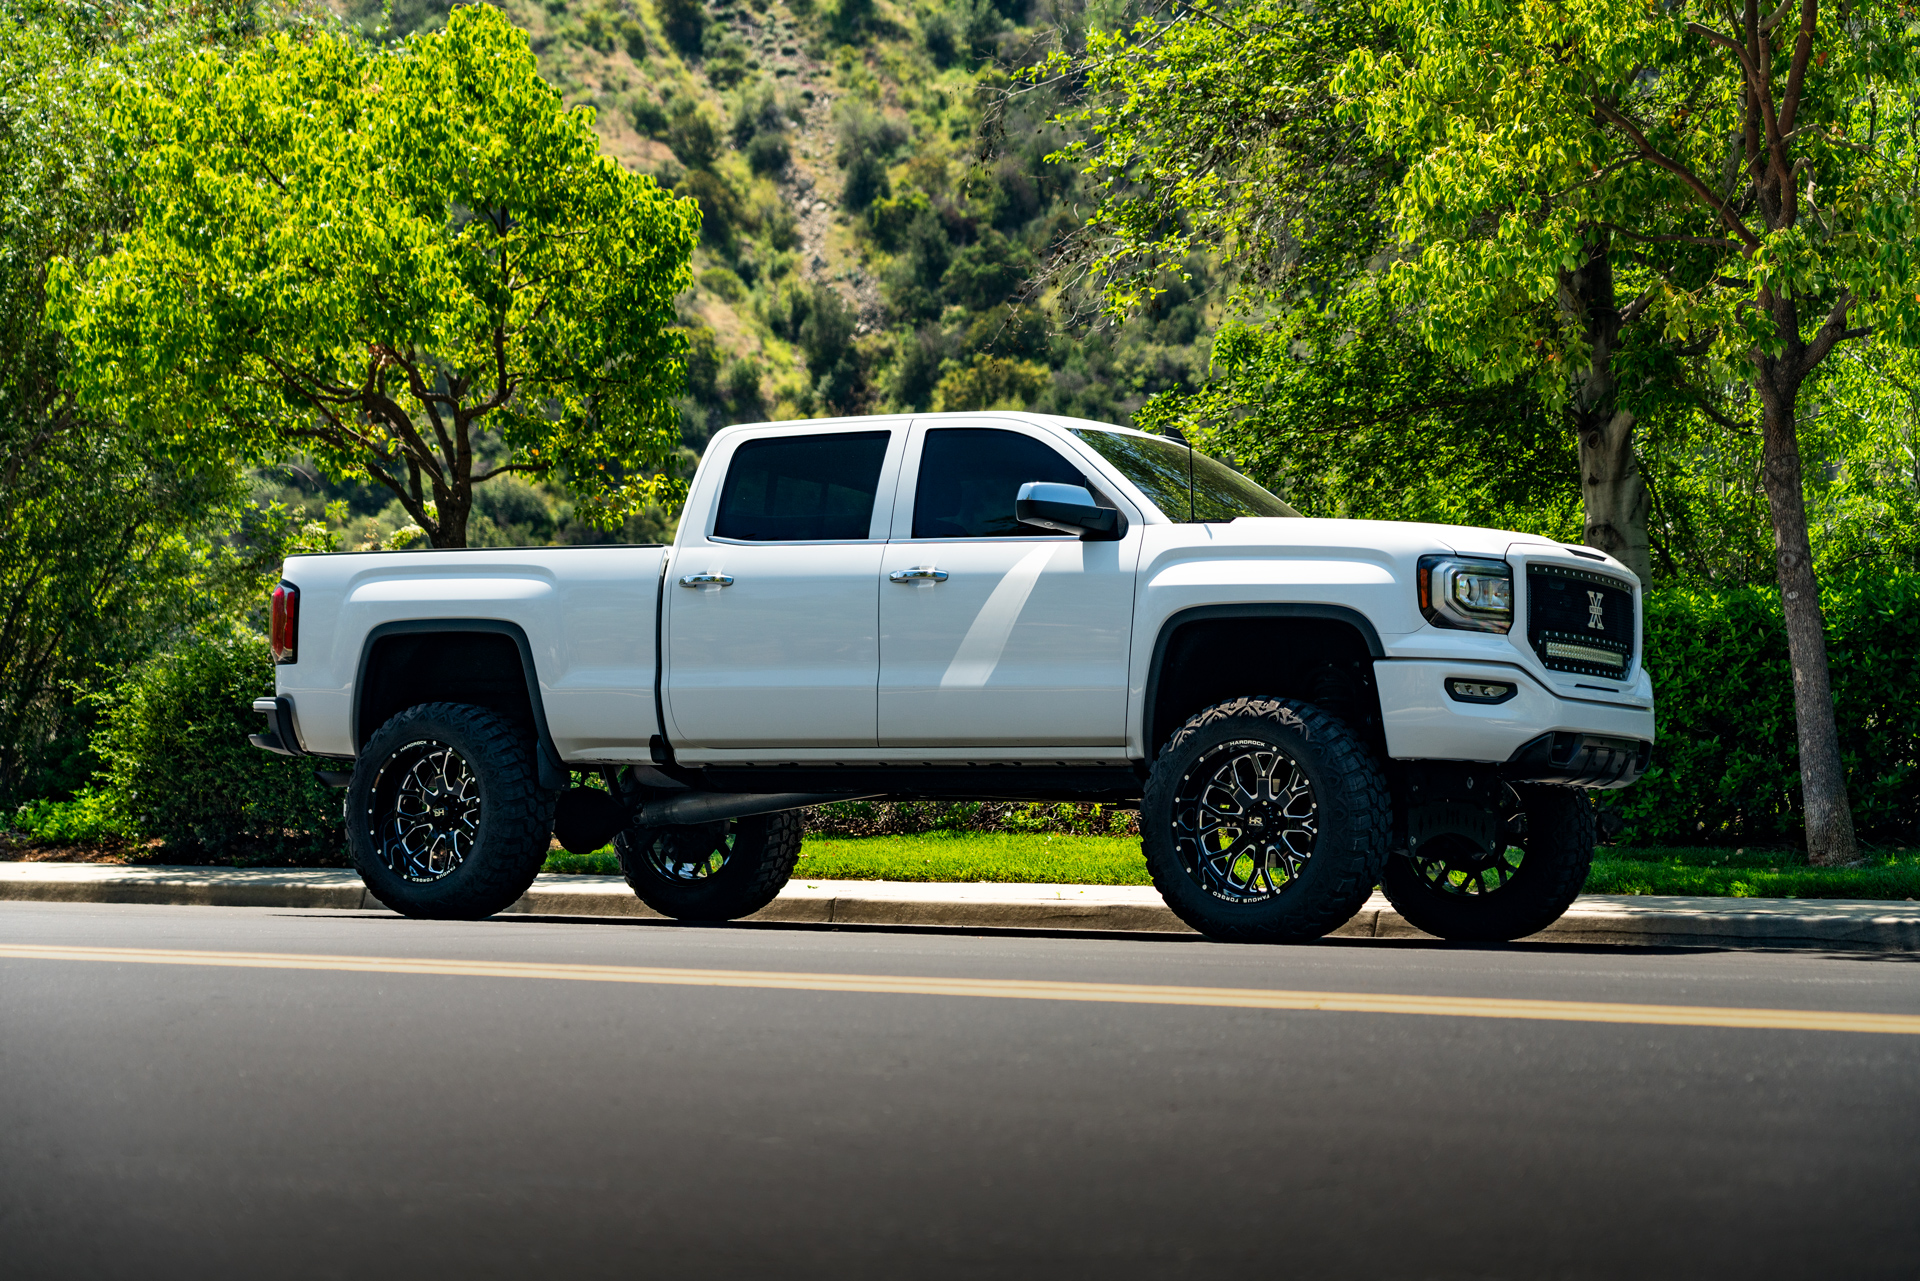 H801 22x12 Famous Forged Hardrock Offroad Wheels Lifted GMC Sierra